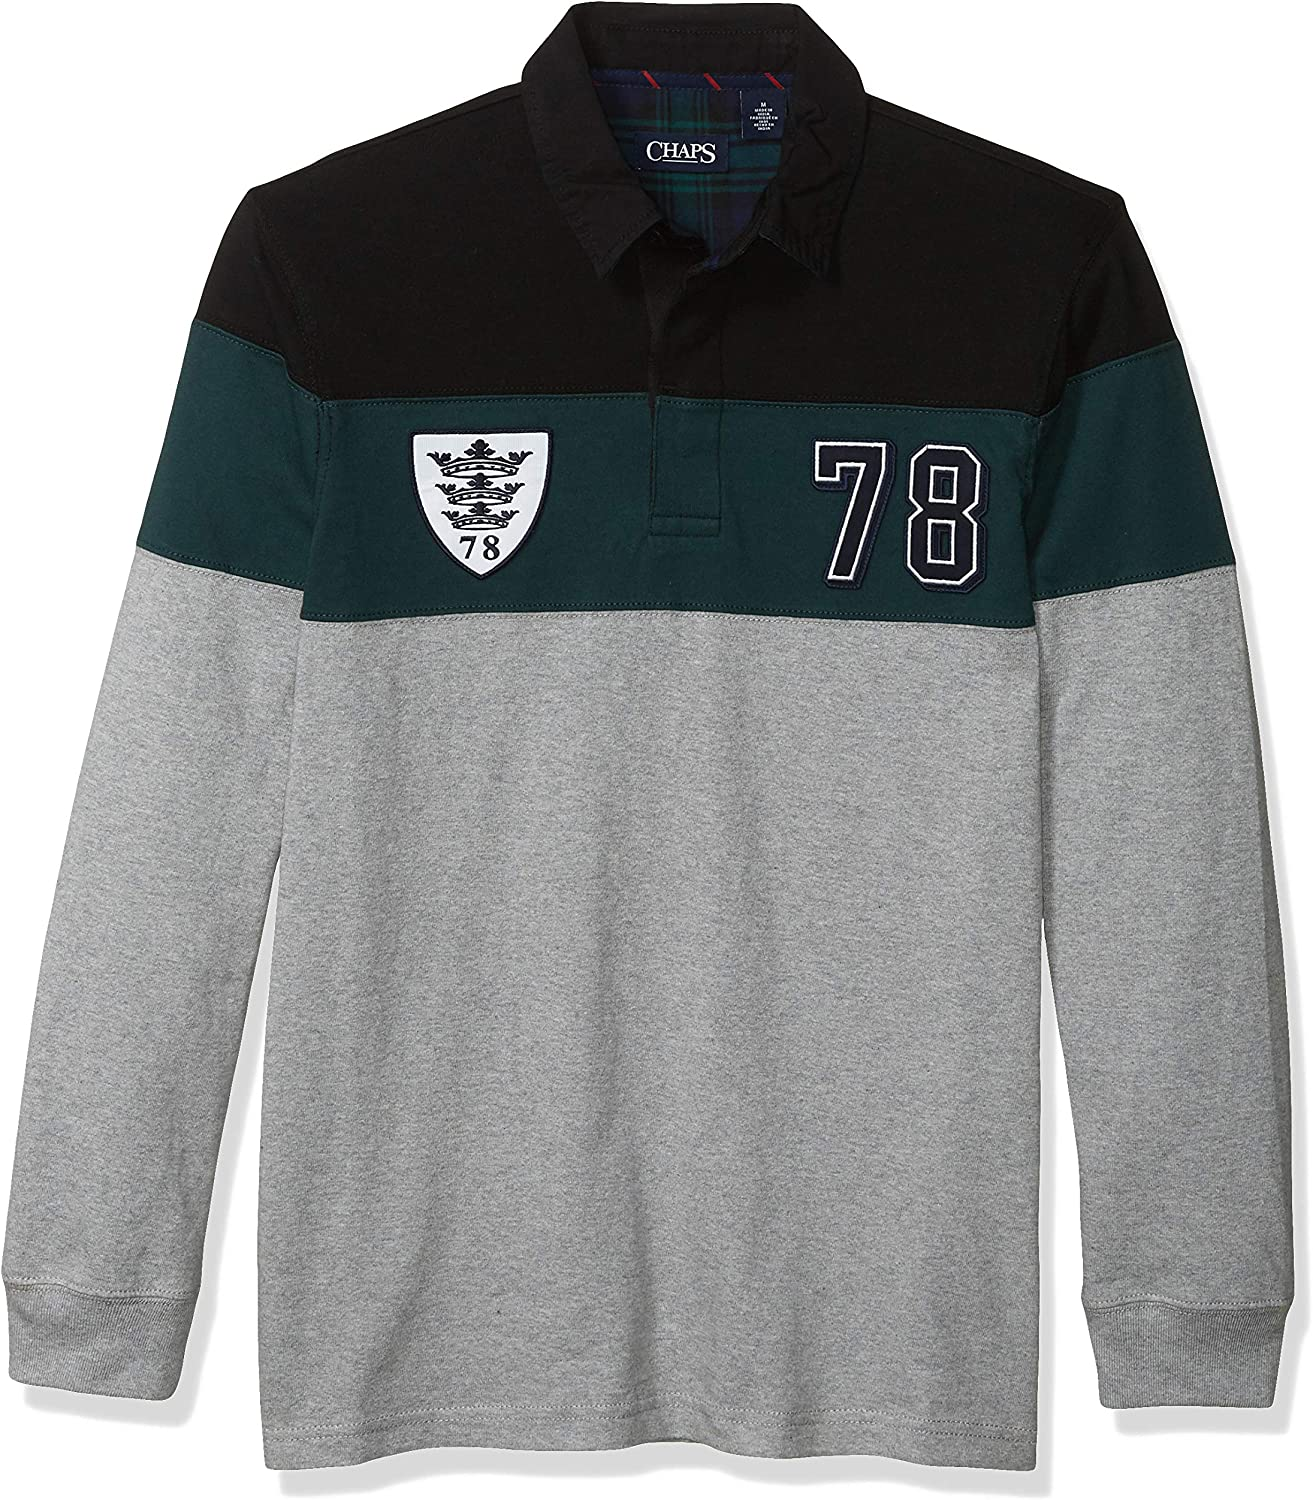 Chaps Heritage Collection - Camiseta de Rugby para Hombre: Amazon ...